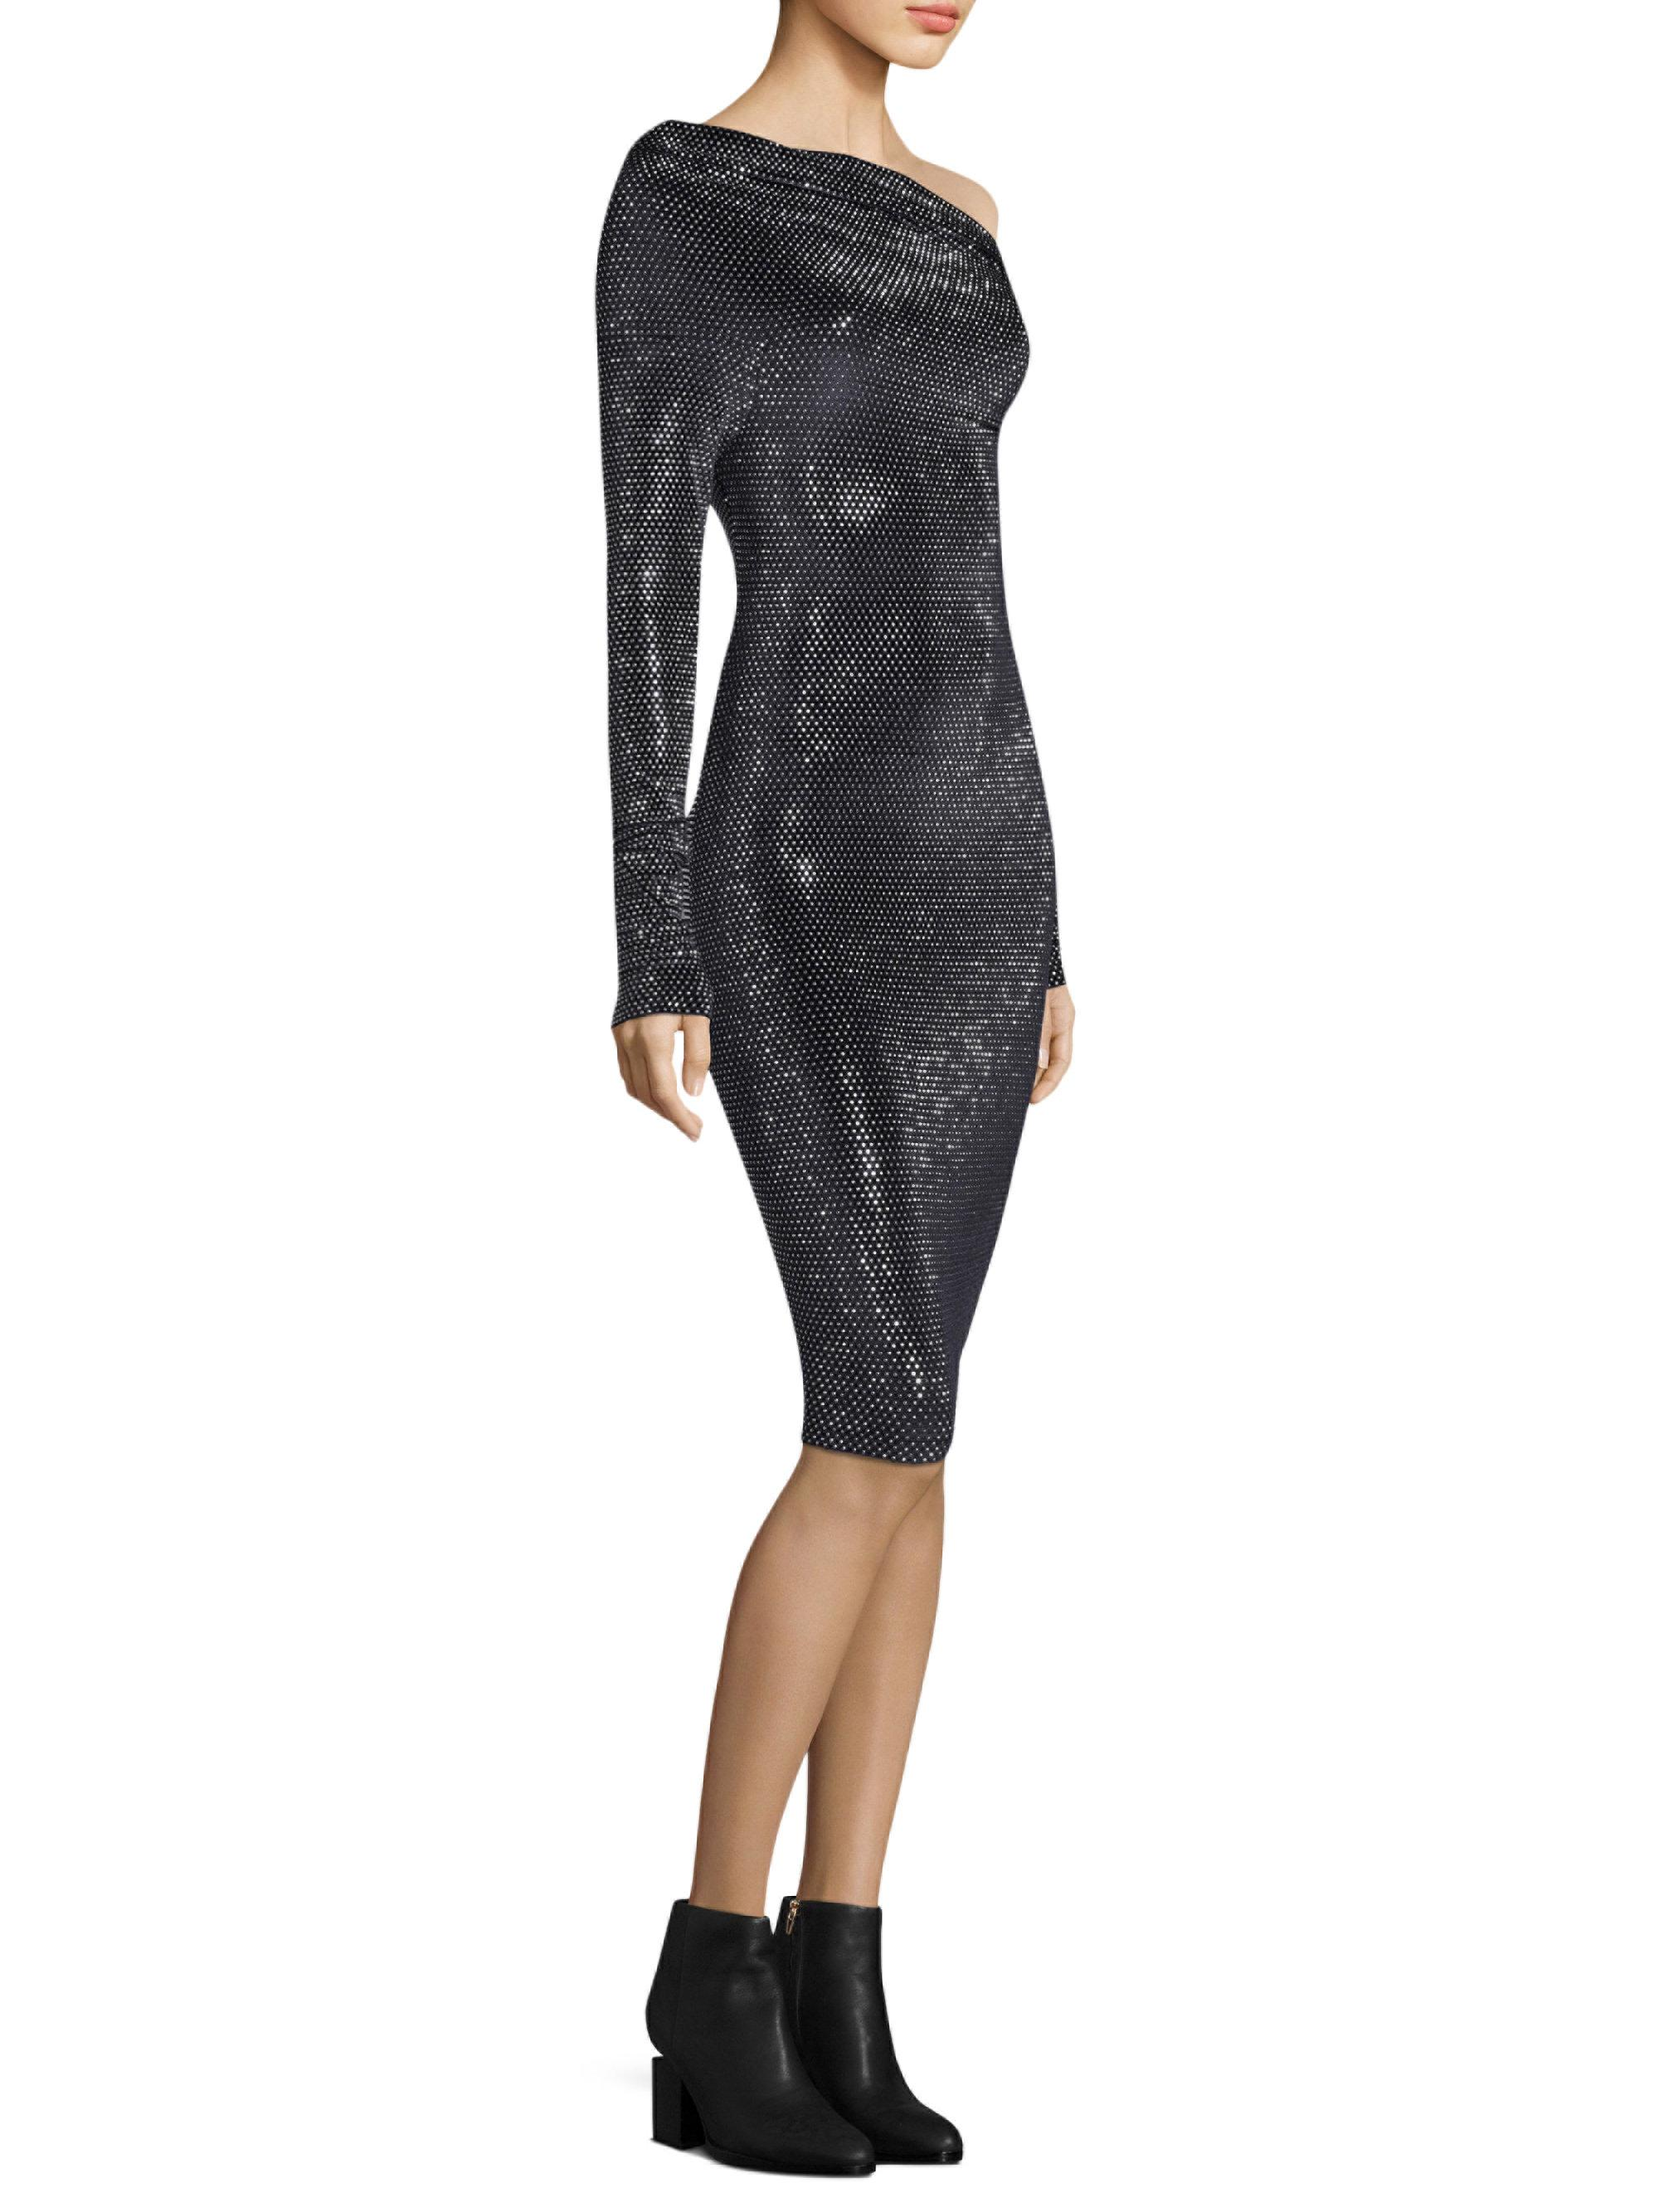 Dress Black Lyst Faith In Stud Connexion Sail x8g7wHq